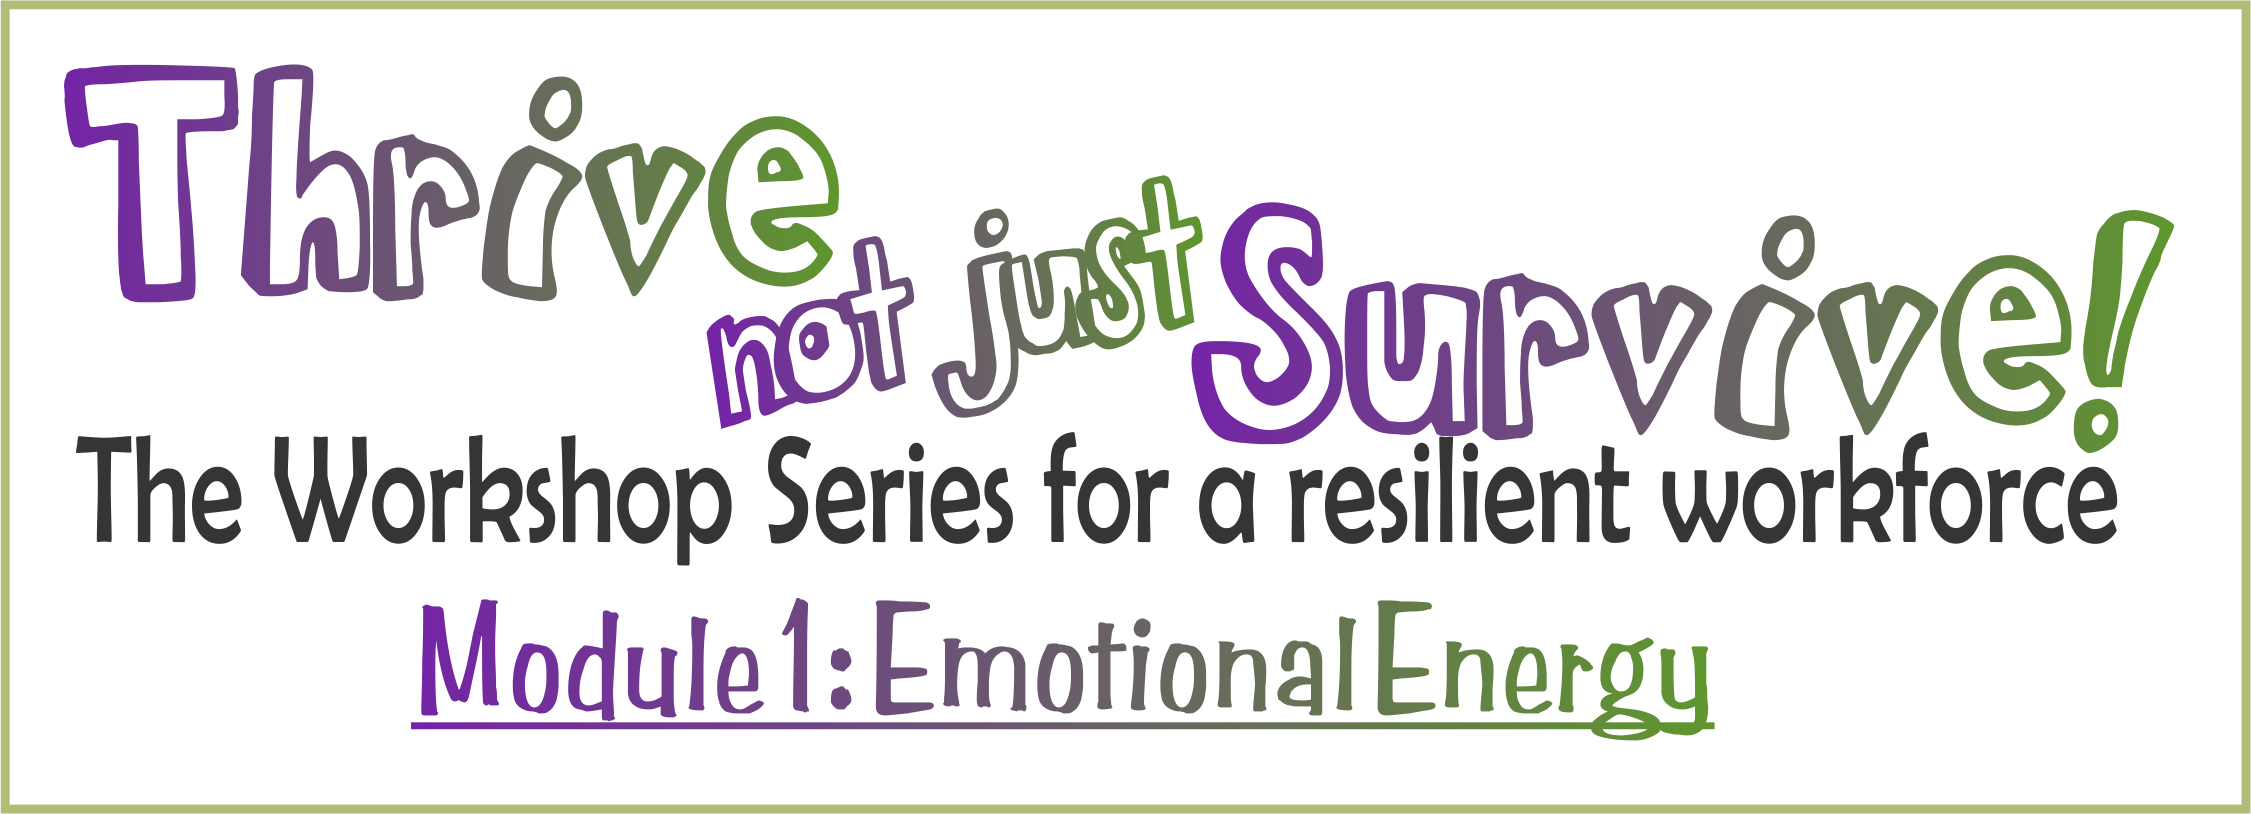 Thrive Not Just Survive: Emotional Energy Title